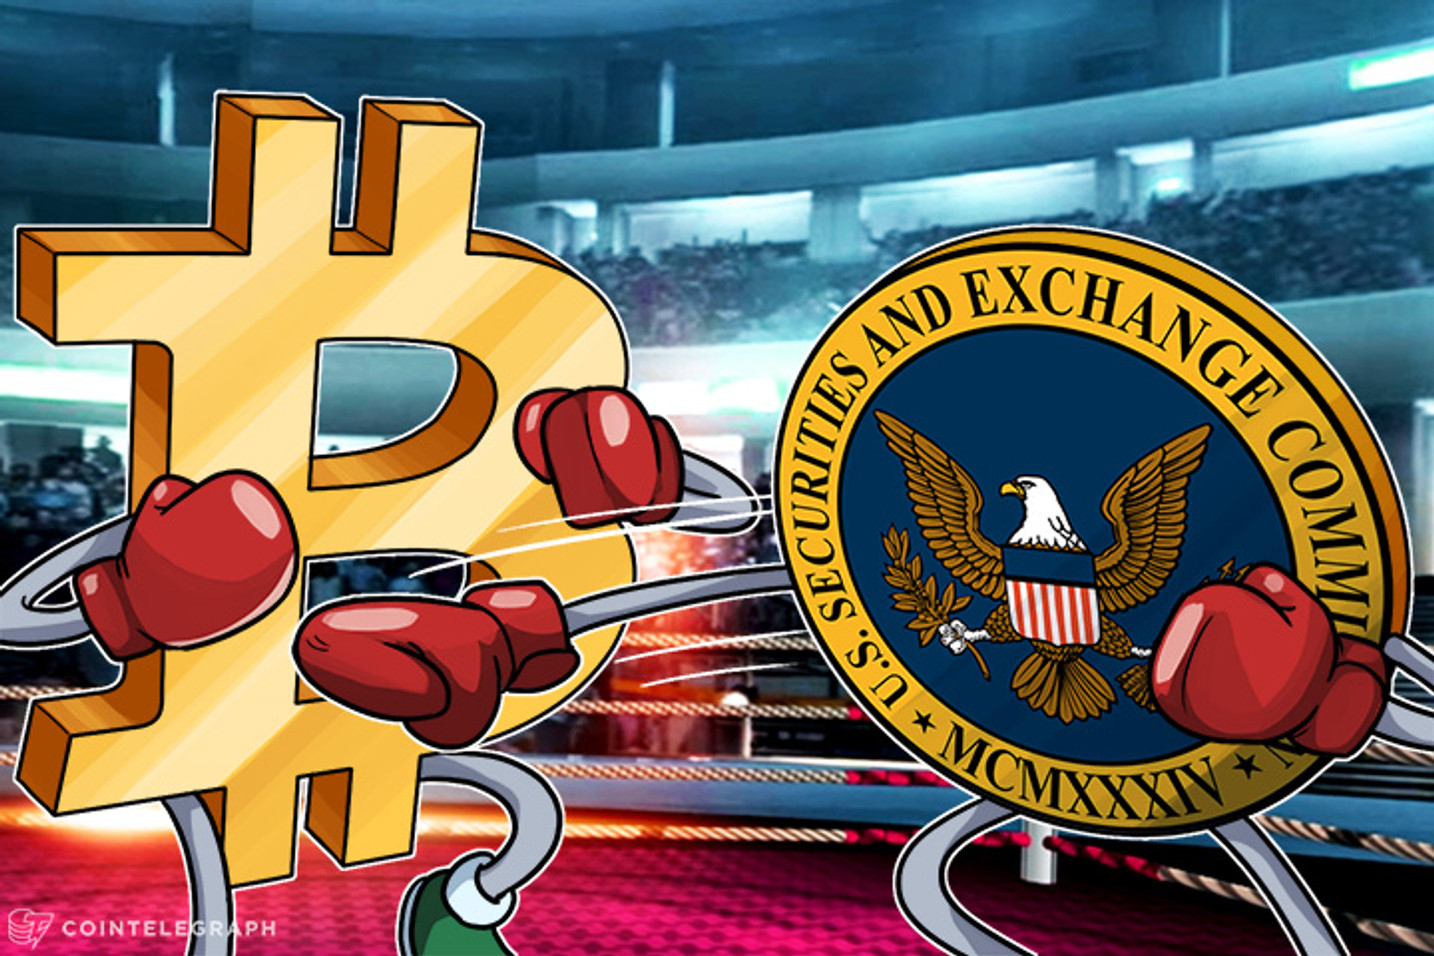 As SEC Rejected Bitcoin ETF, Bitcoin Price Rally Can Still Be Ahead